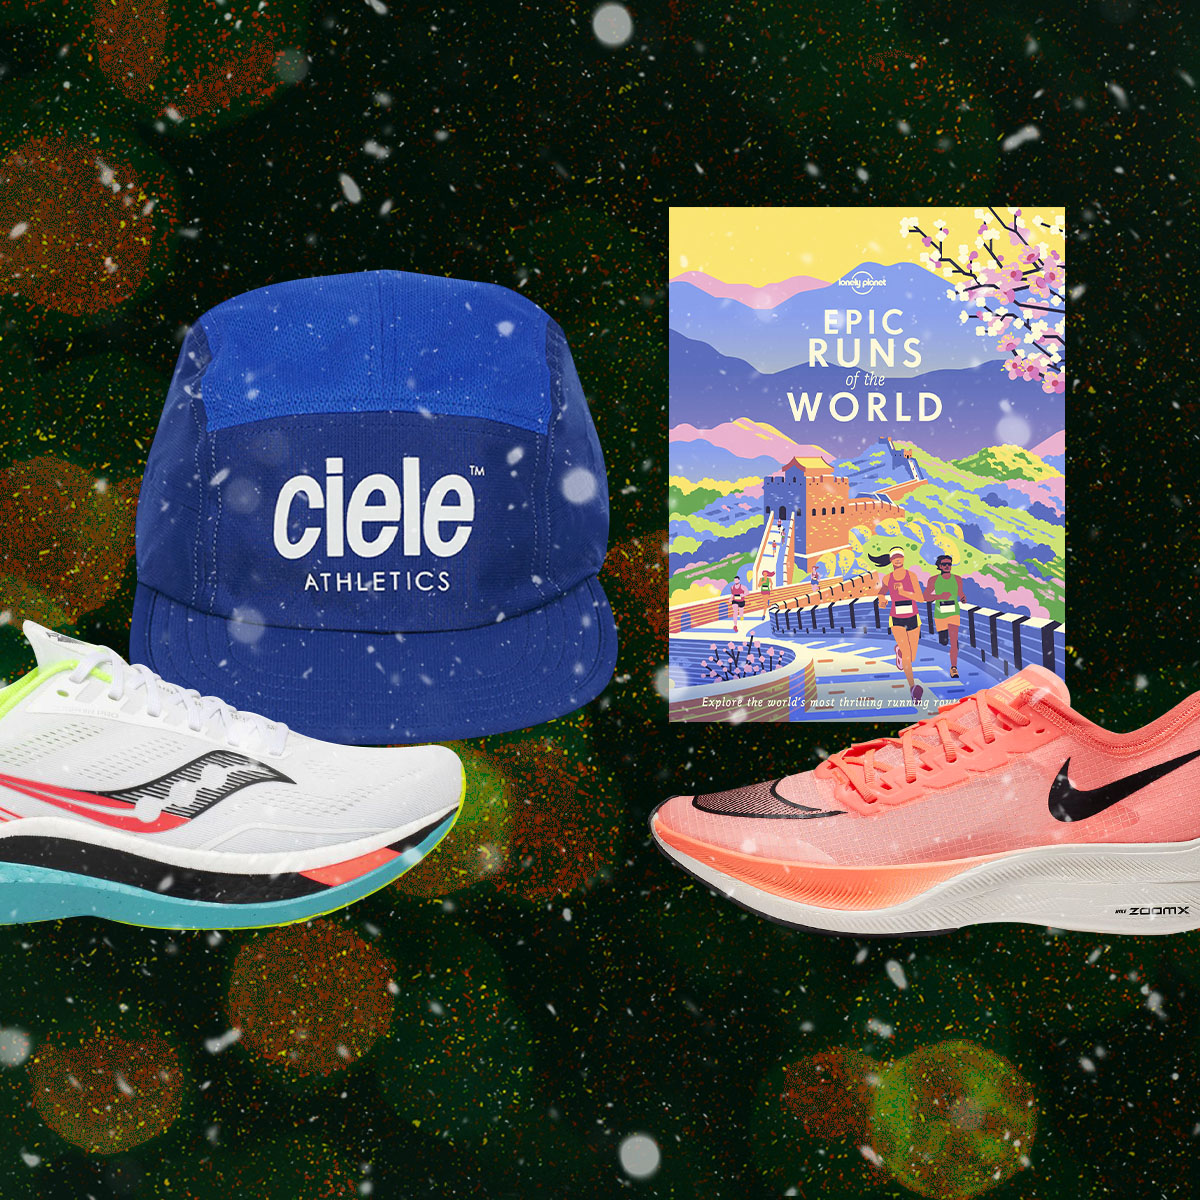 sneakers, running caps and a book about running